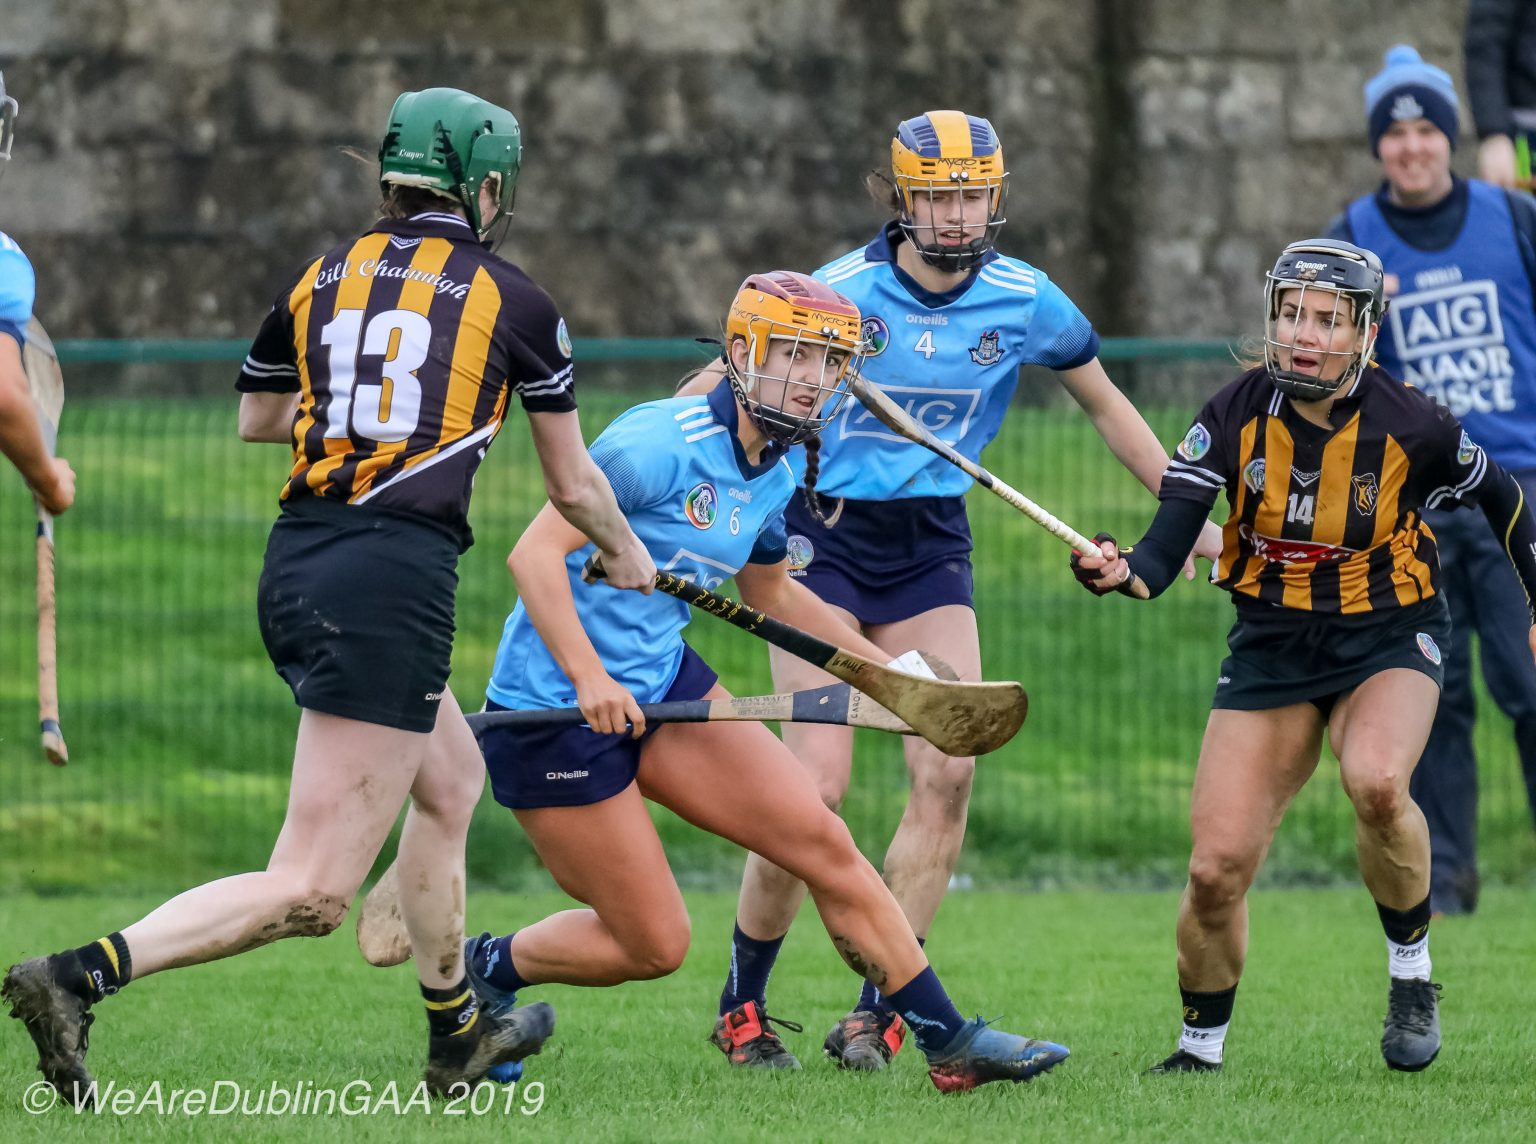 Two Dublin Camogie Players In sky blue jerseys and navy skorts in action against two Kilkenny players in black and amber striped jerseys and black skorts both sides meet in the Leinster Senior Camogie championship quarter final